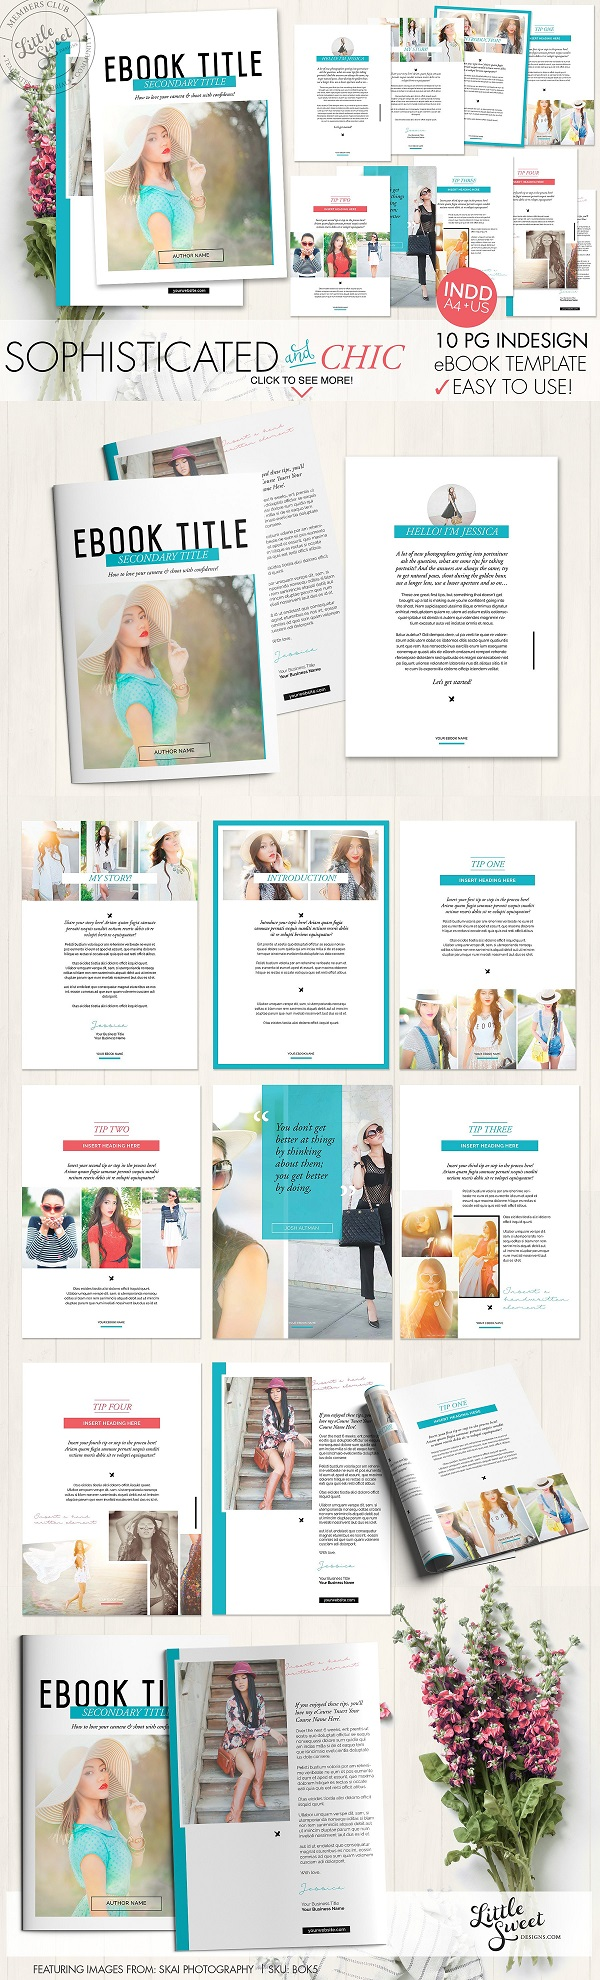 10 page InDesign eBook Template 999955